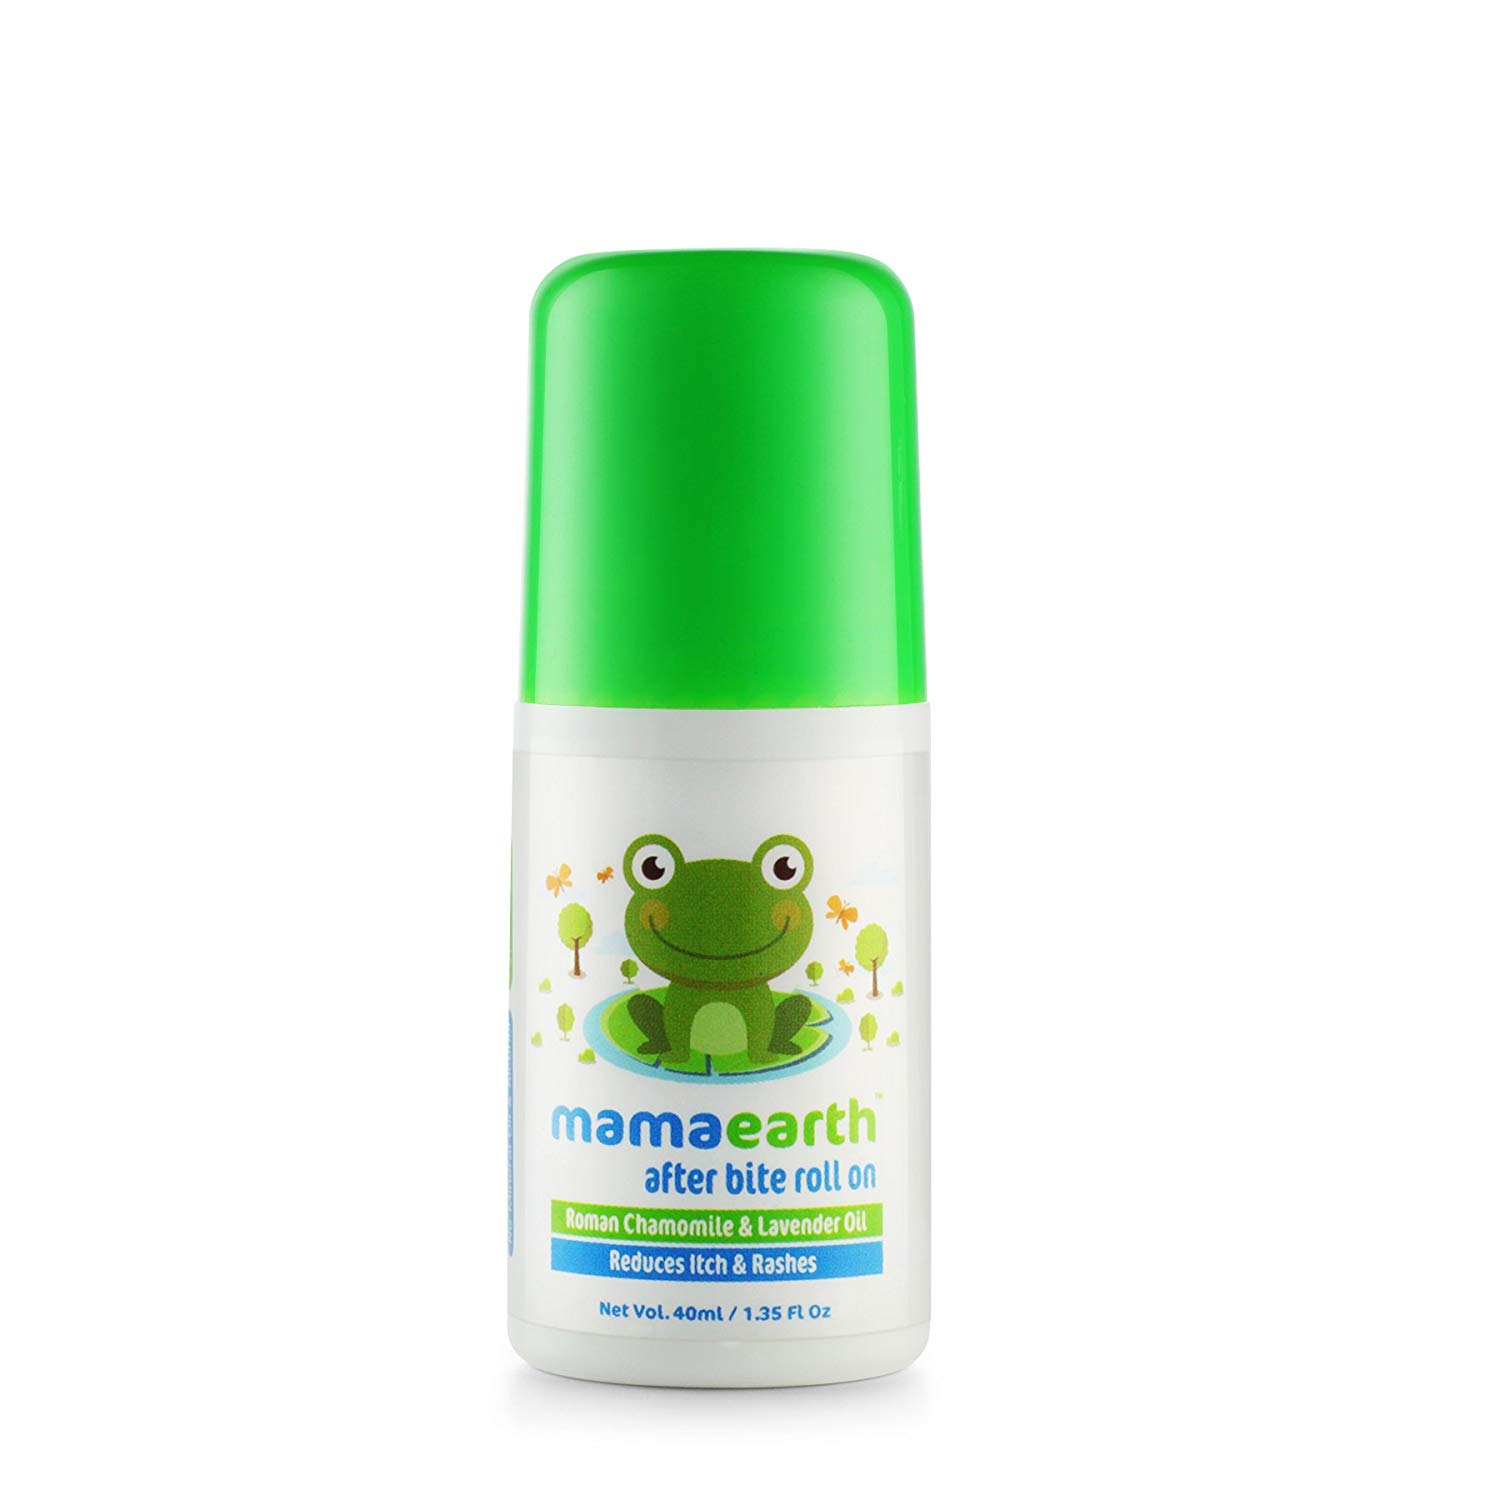 Mamaearth After Bite Roll On with Chamomile Oil for Kids and Babies